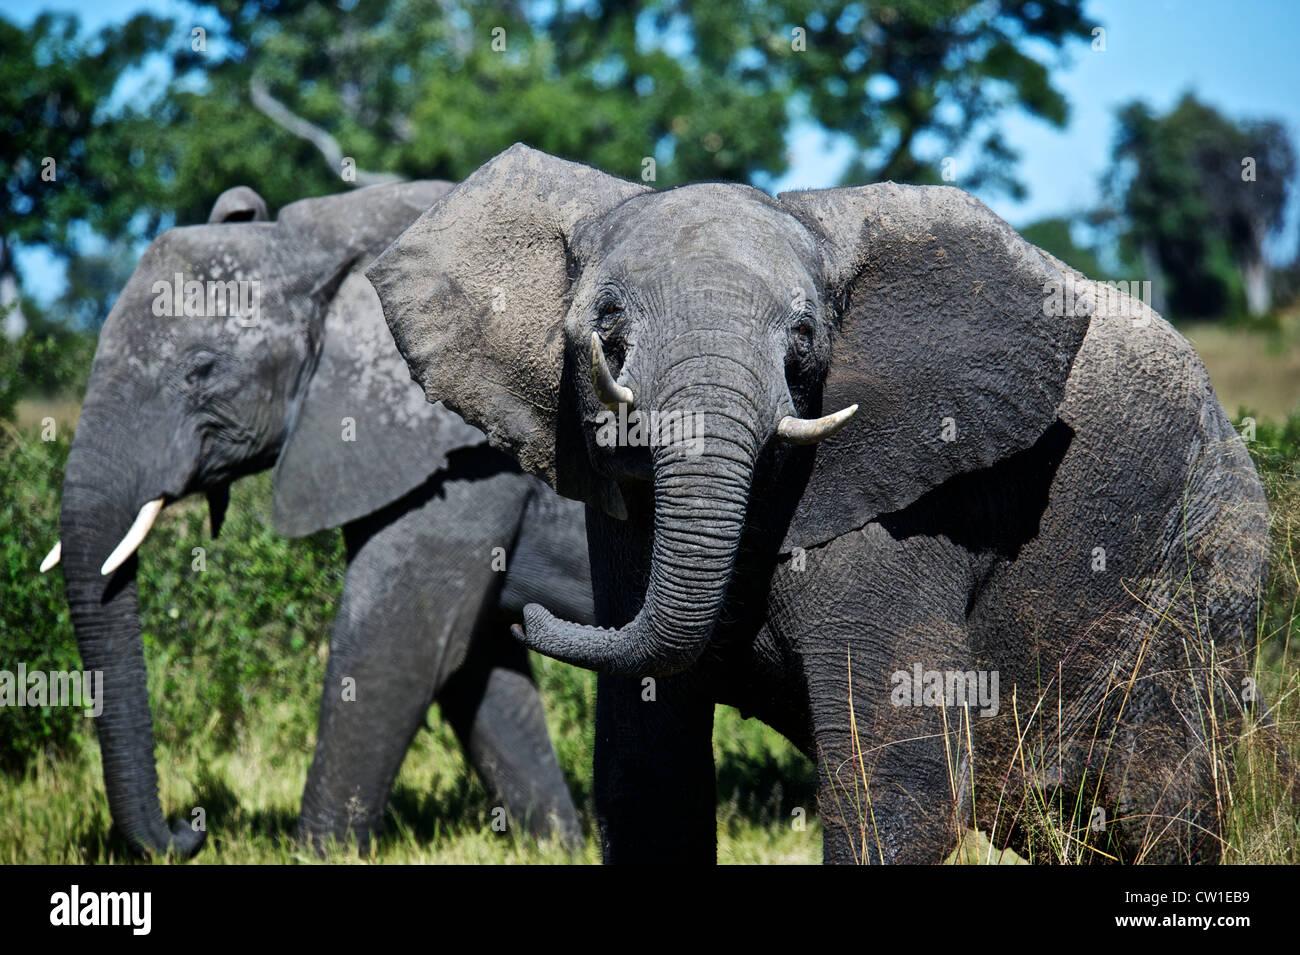 Elephant on safari trip. Duba, Africa. - Stock Image